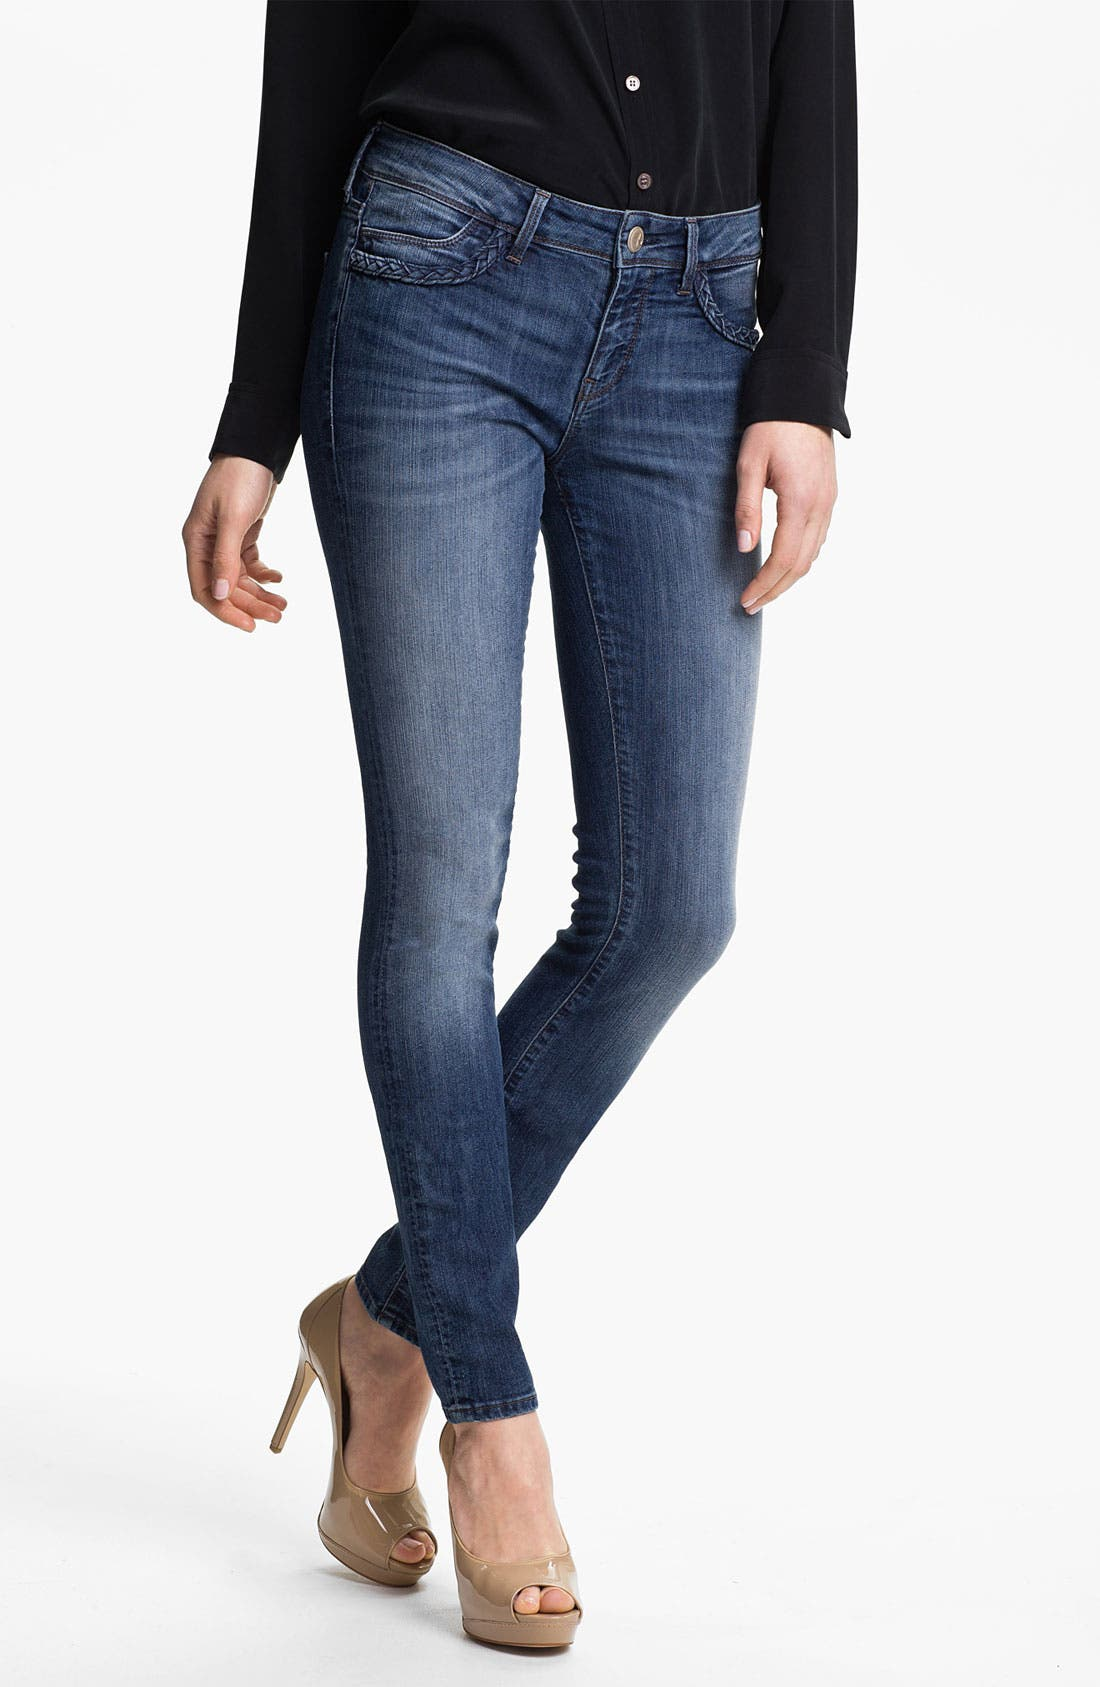 Alternate Image 1 Selected - Mavi Jeans 'Alexa' Braid Trim Jeans (Dark)